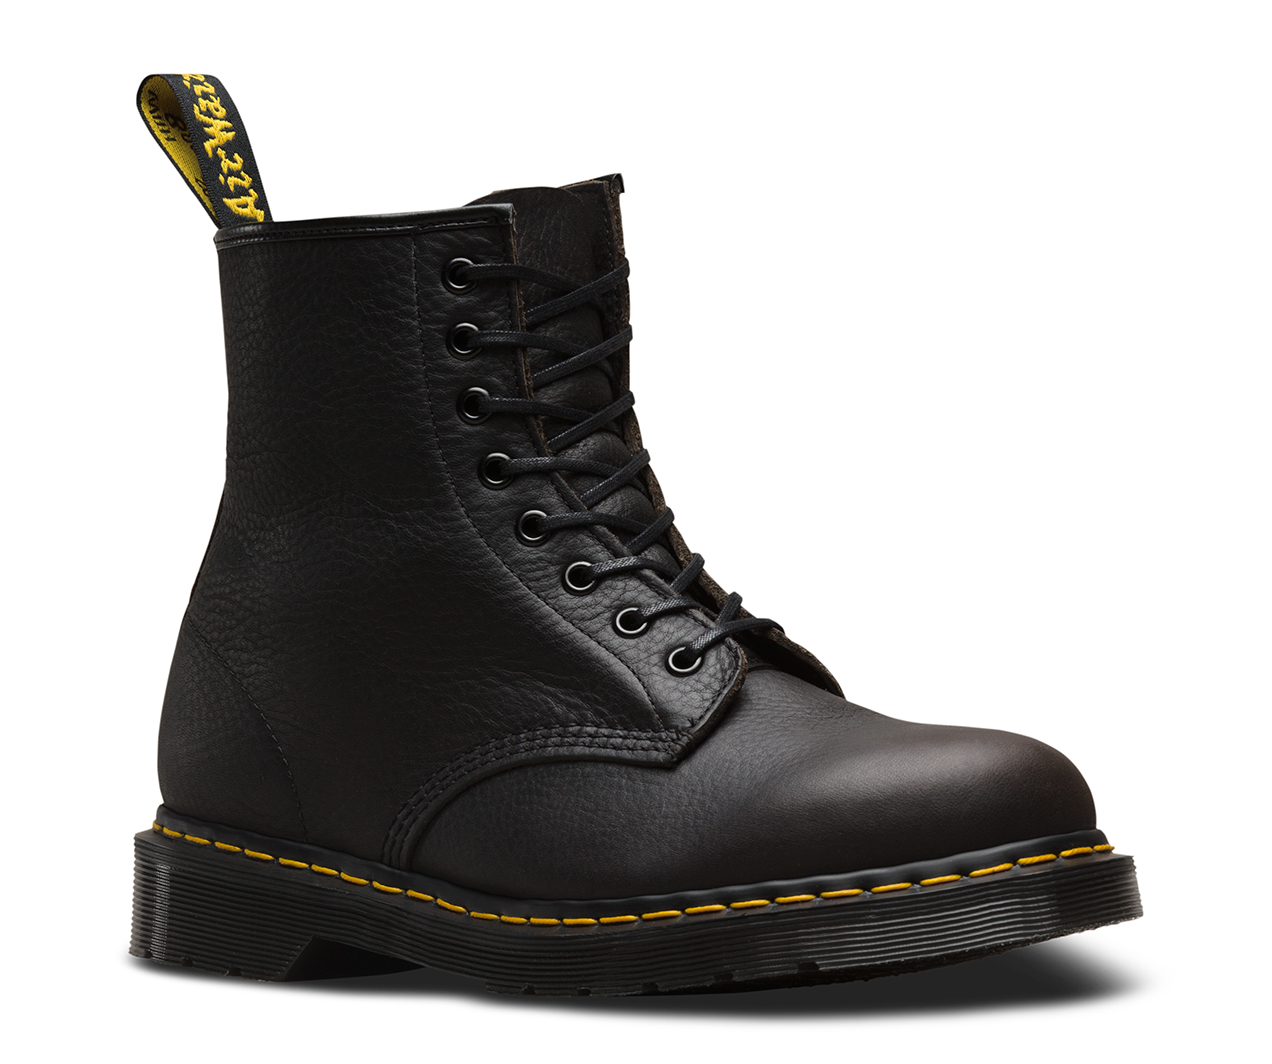 Dr. Martens Women's 1460 Leather Ankle Boots - Black